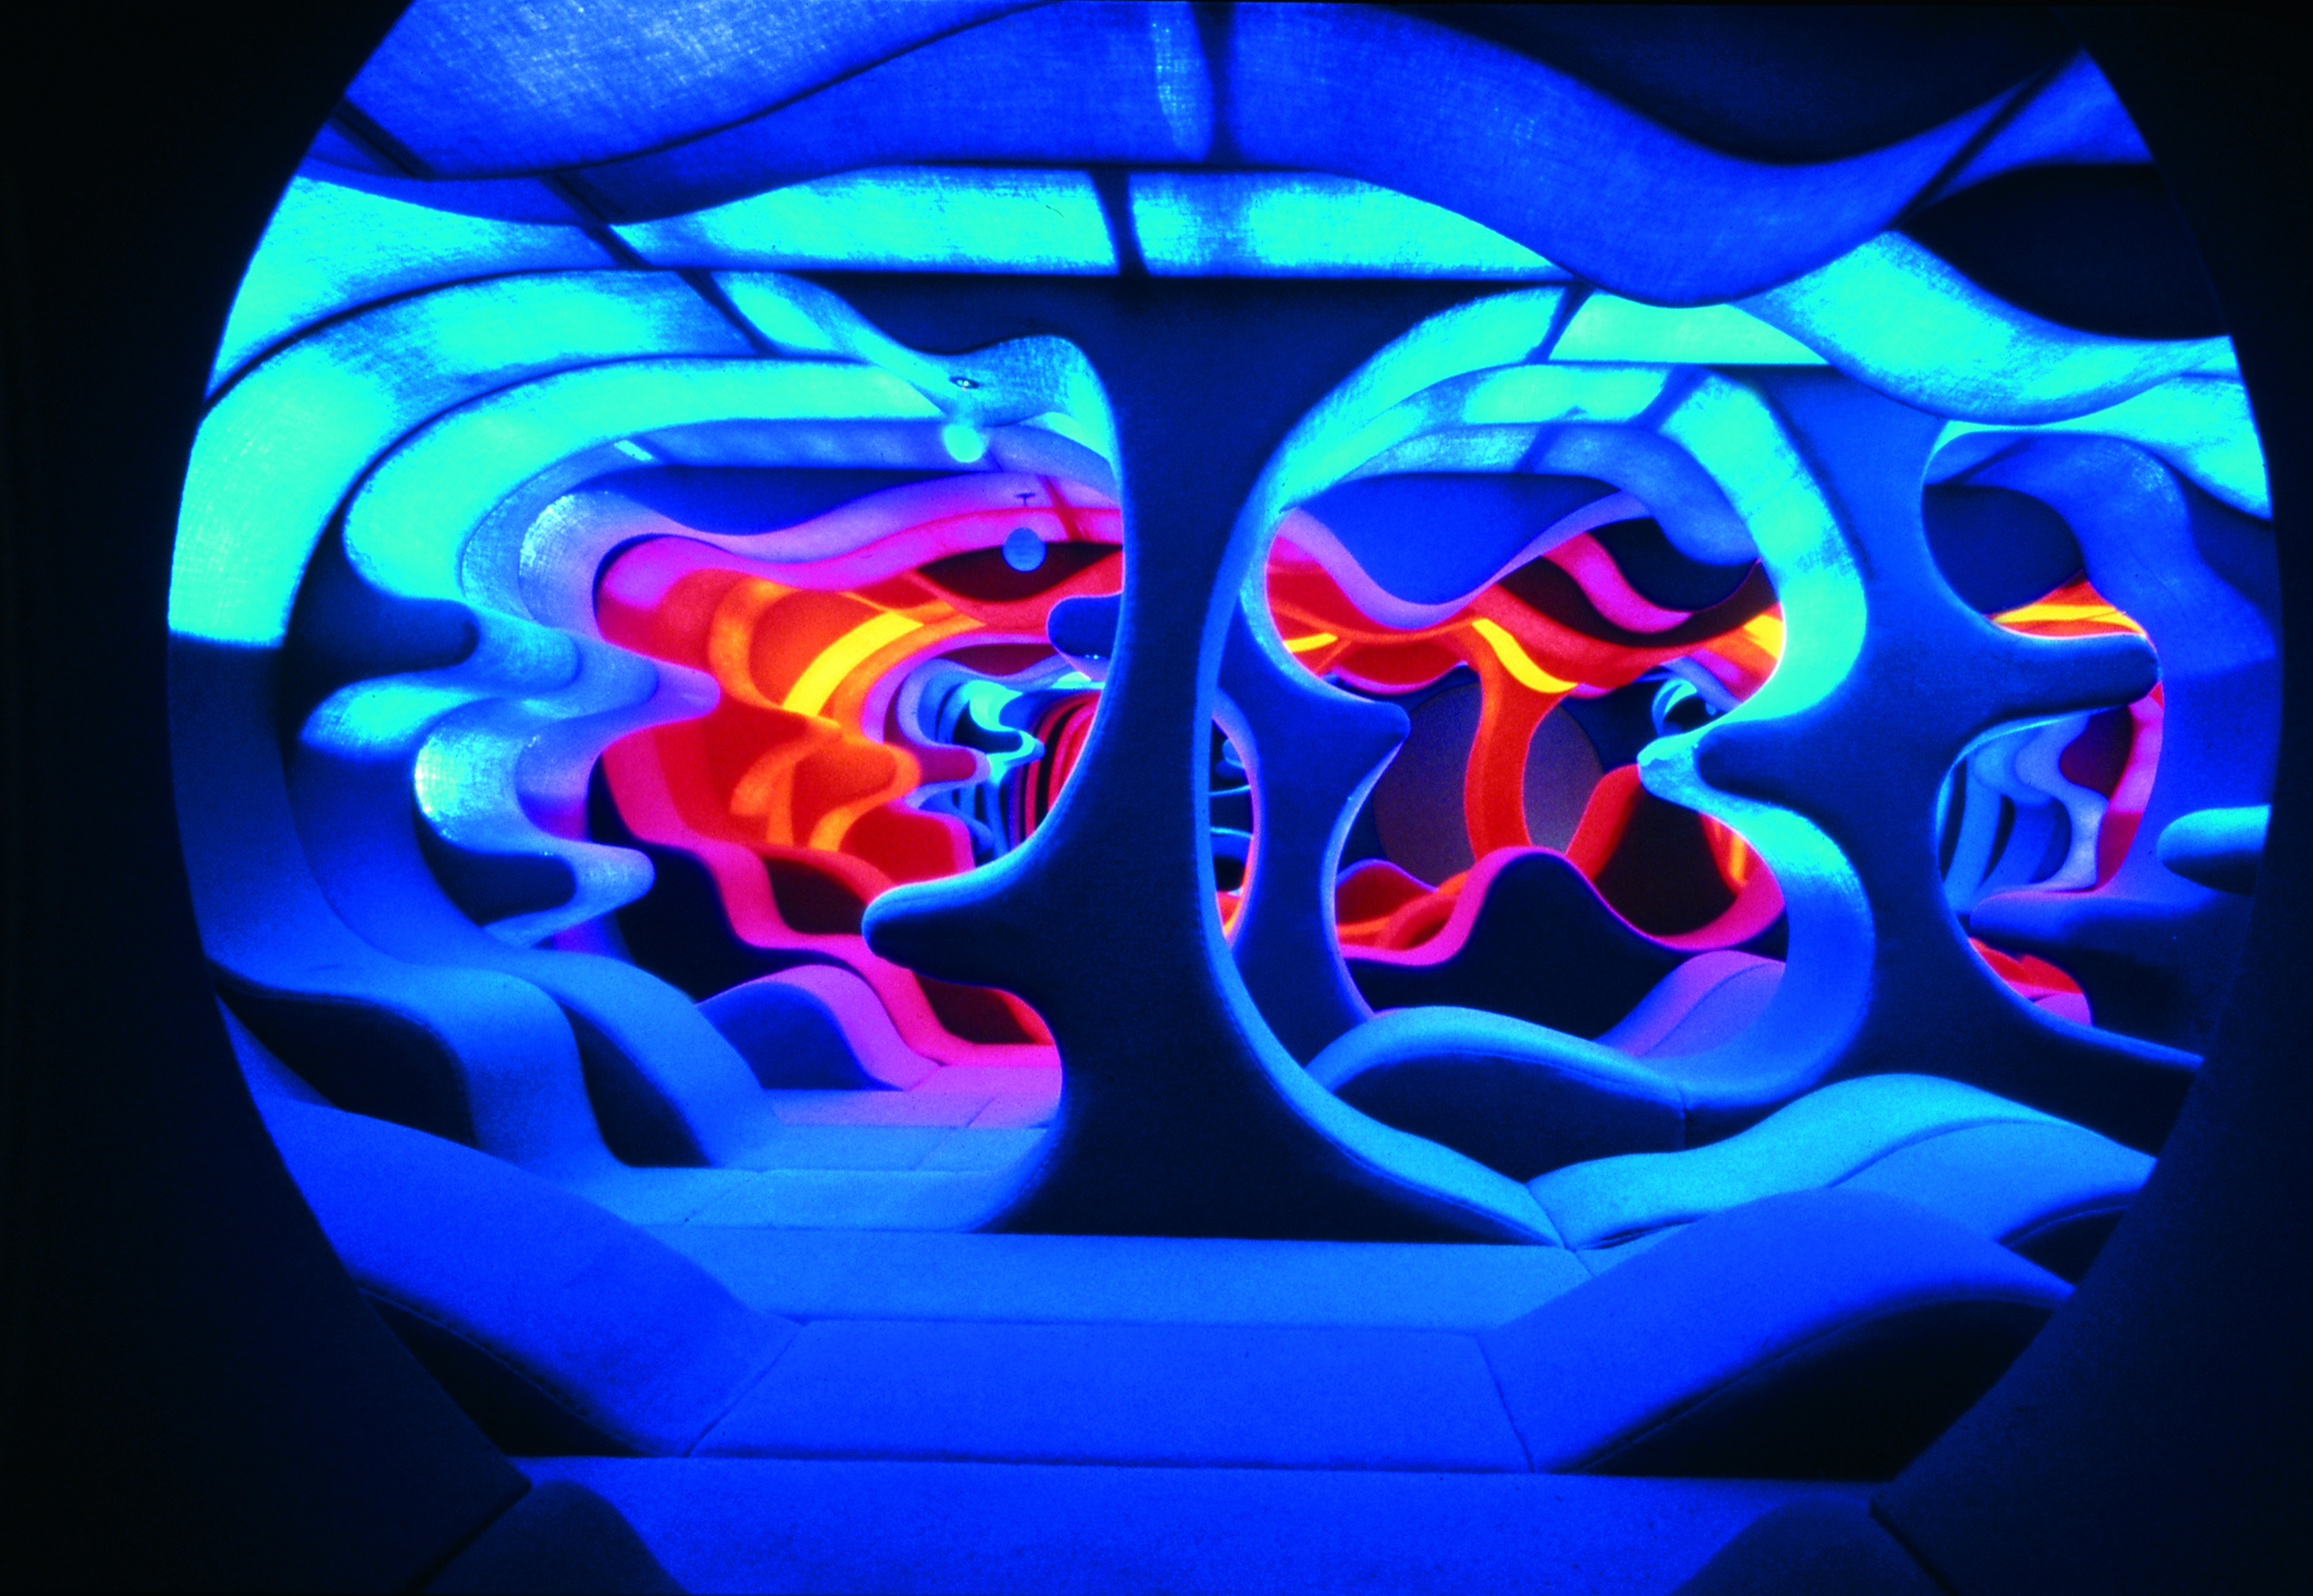 Verner Panton, Phantasy Landscape at the exhhibition Visiona 2, Cologne, Germany, 1970